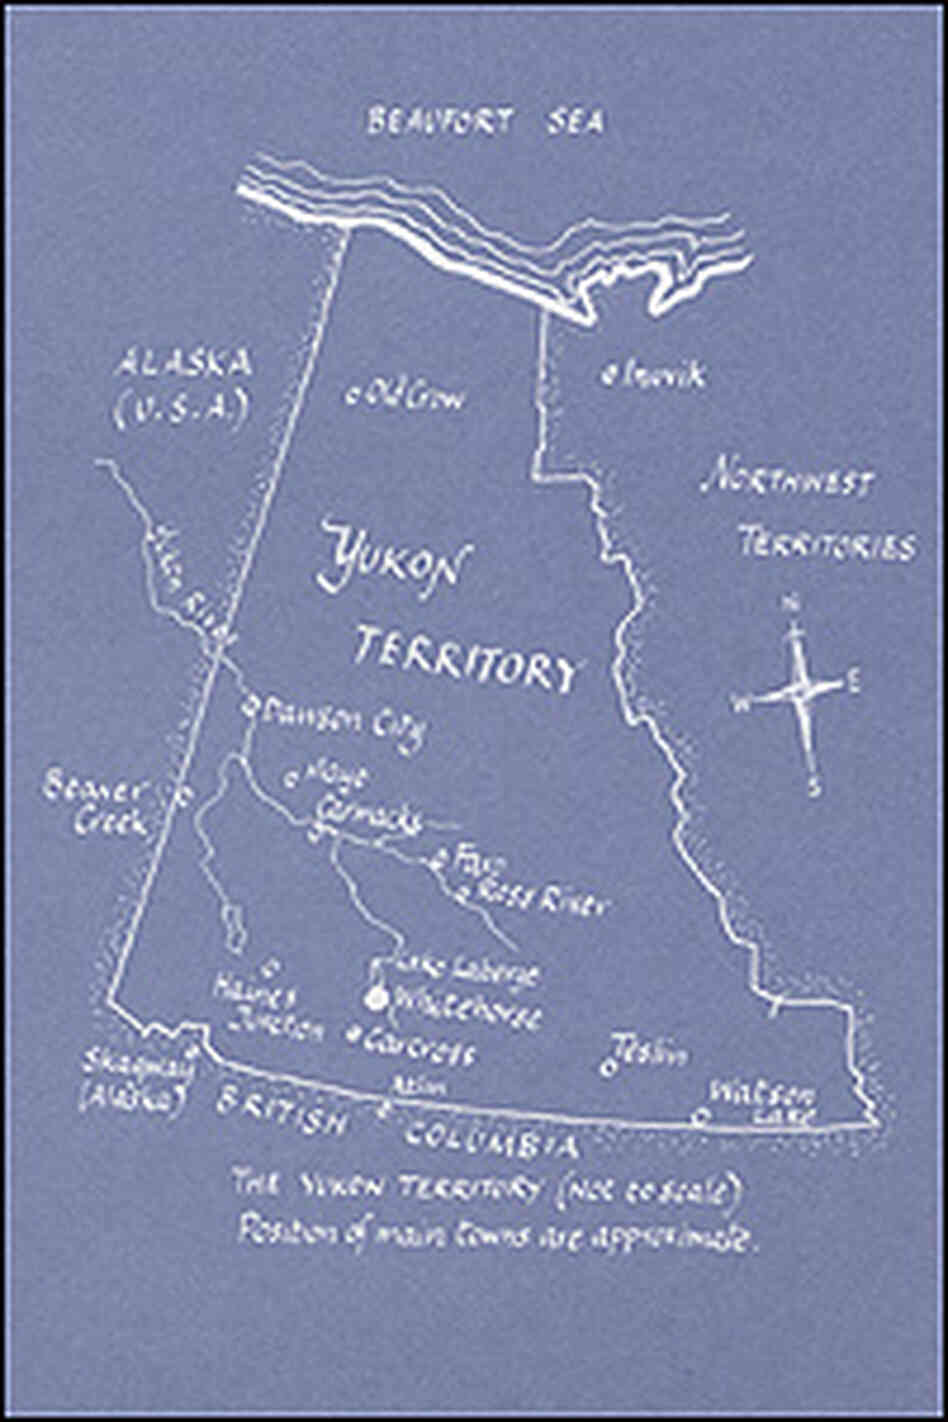 A helpful map of the Yukon serves as the back cover of the book.